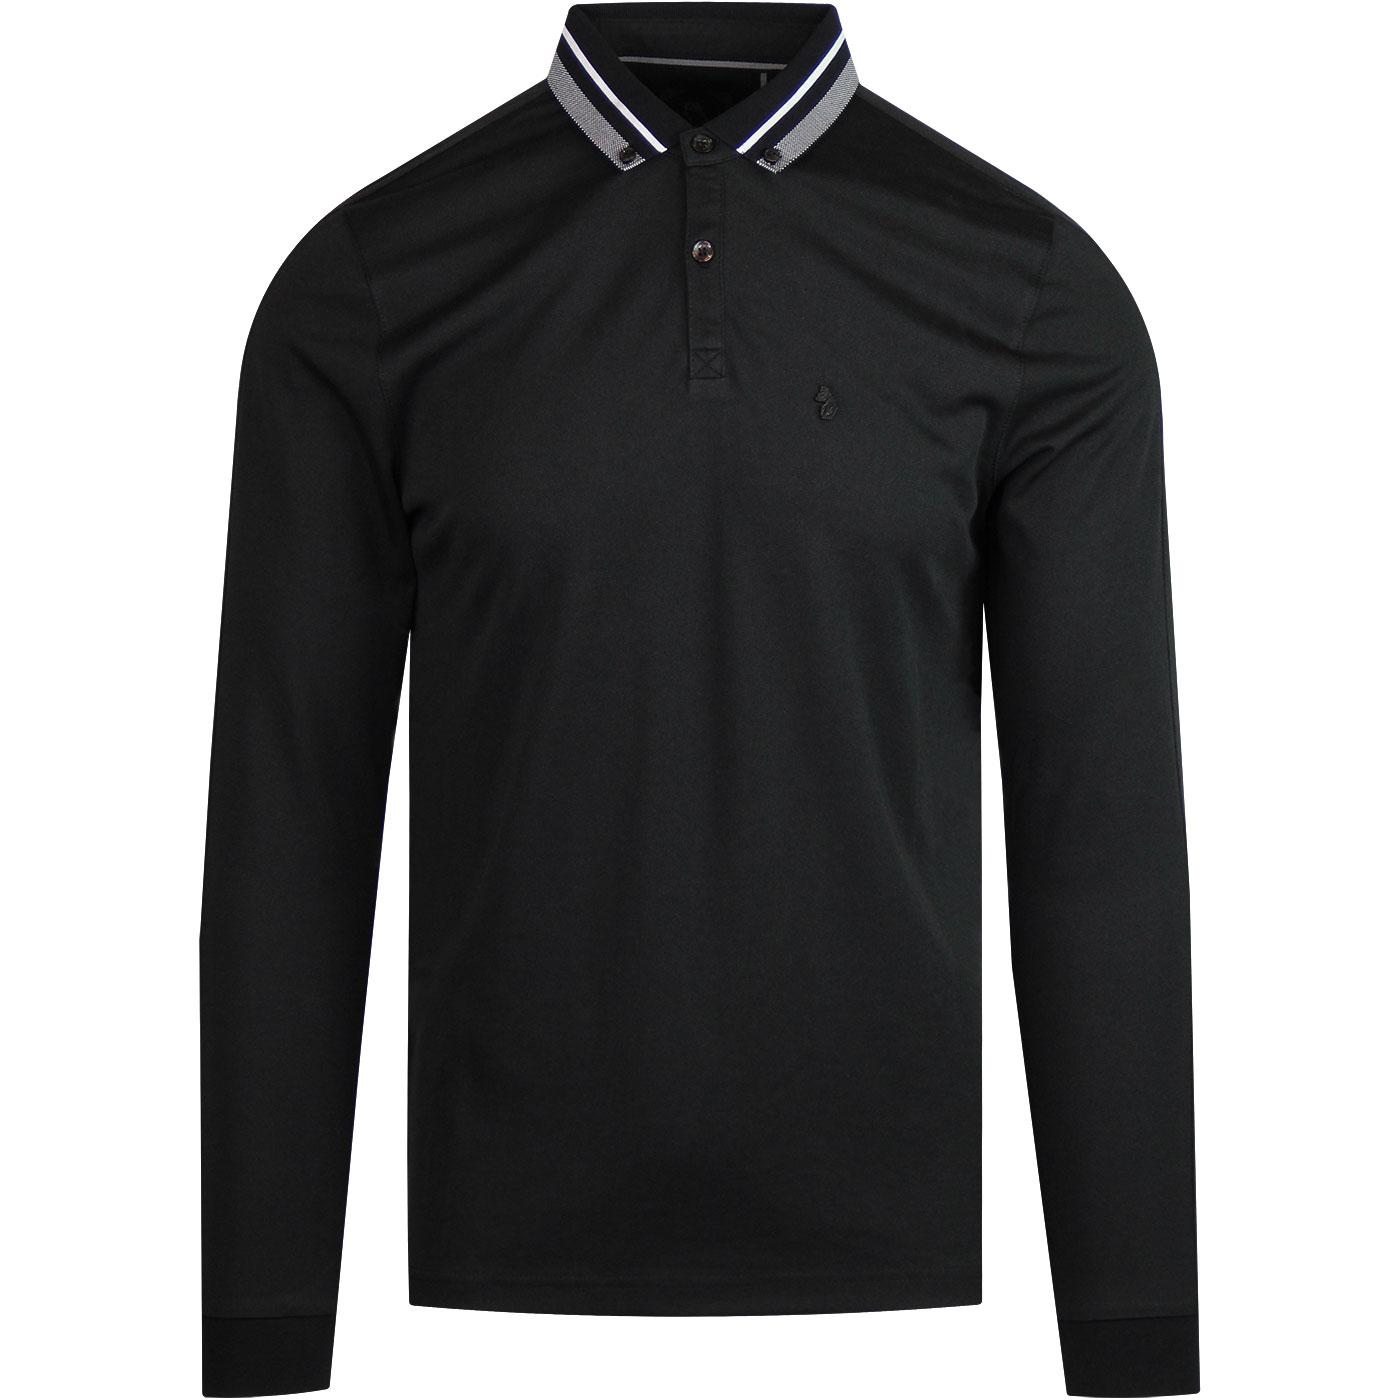 Twinkletoes LUKE 1977 Mod Long sleeve Polo (Black)